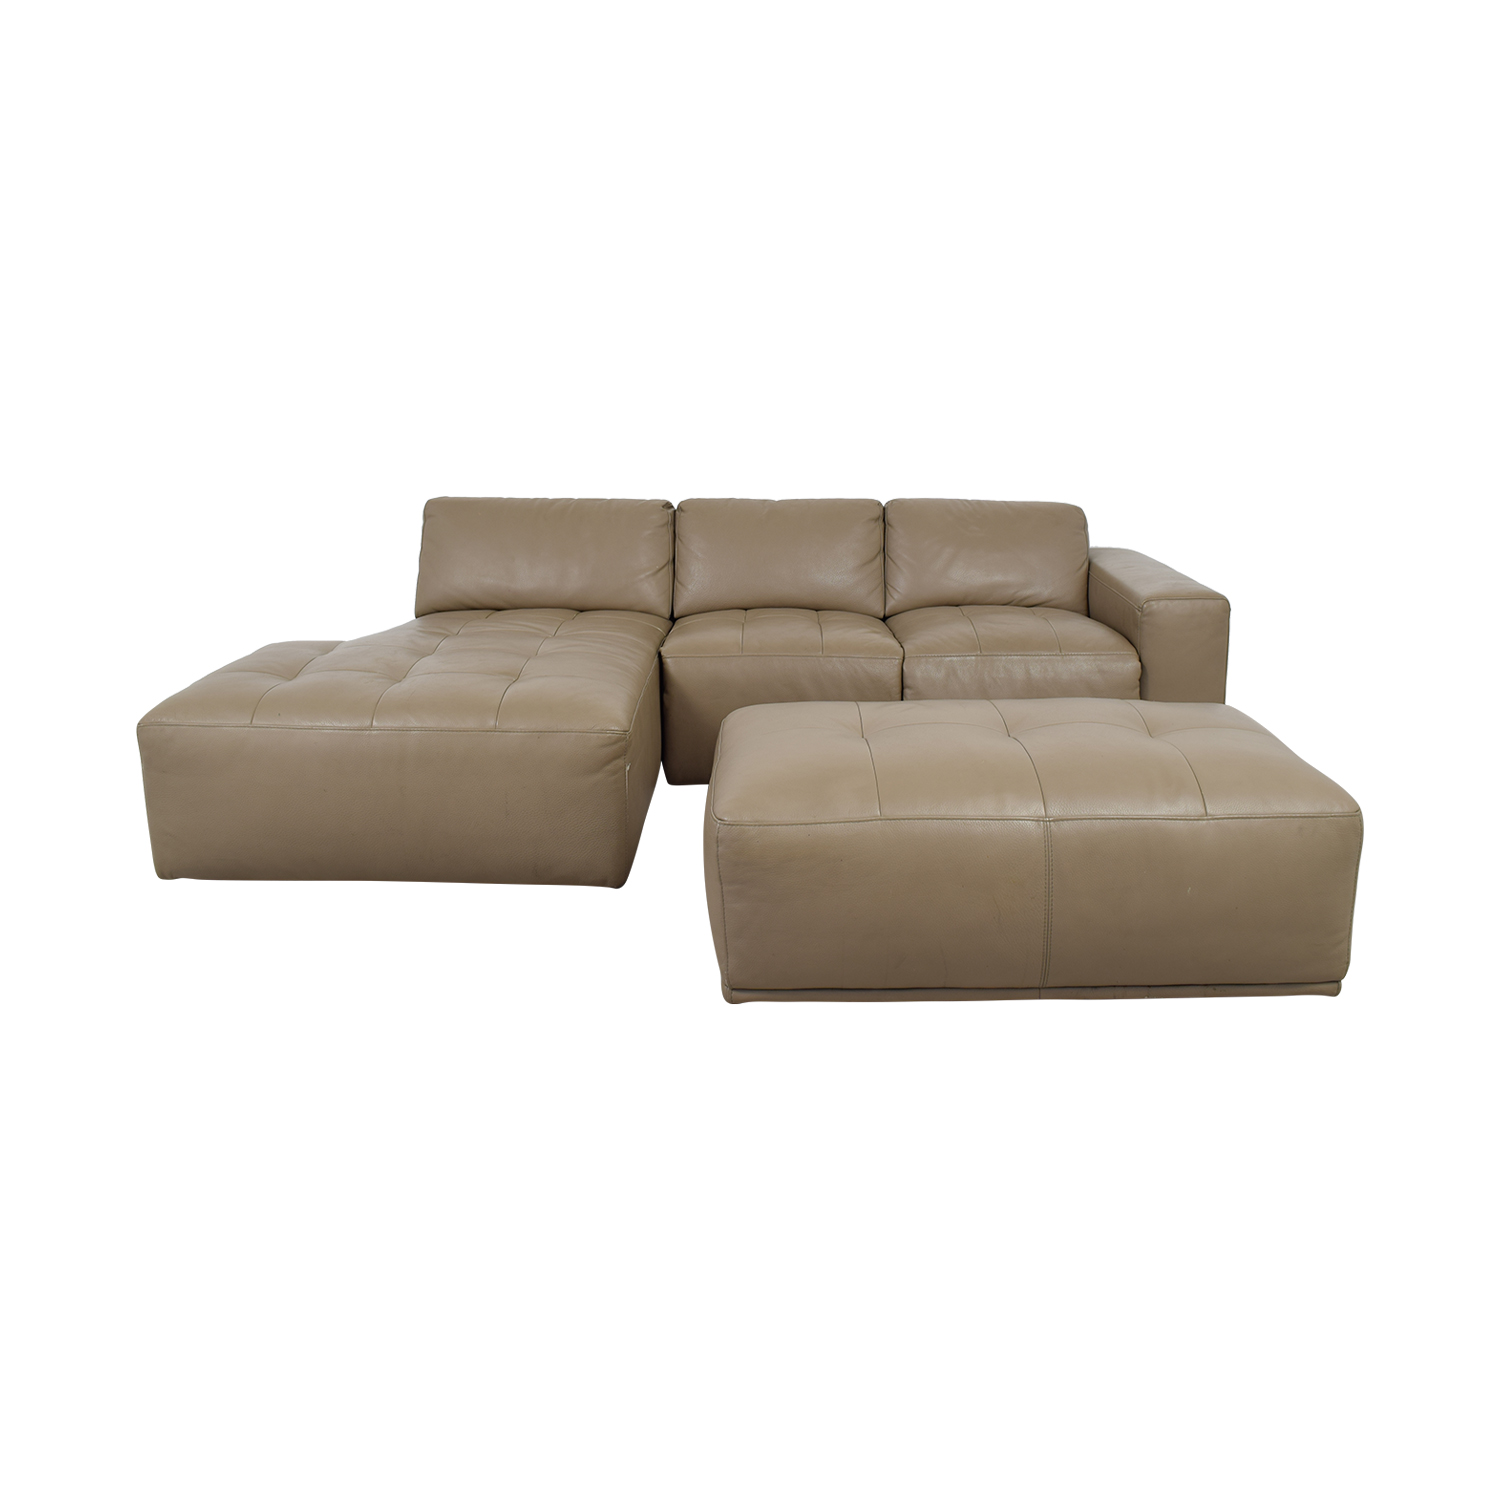 shop Planum Beige Leather Chaise Sectional with Ottoman Planum Sectionals